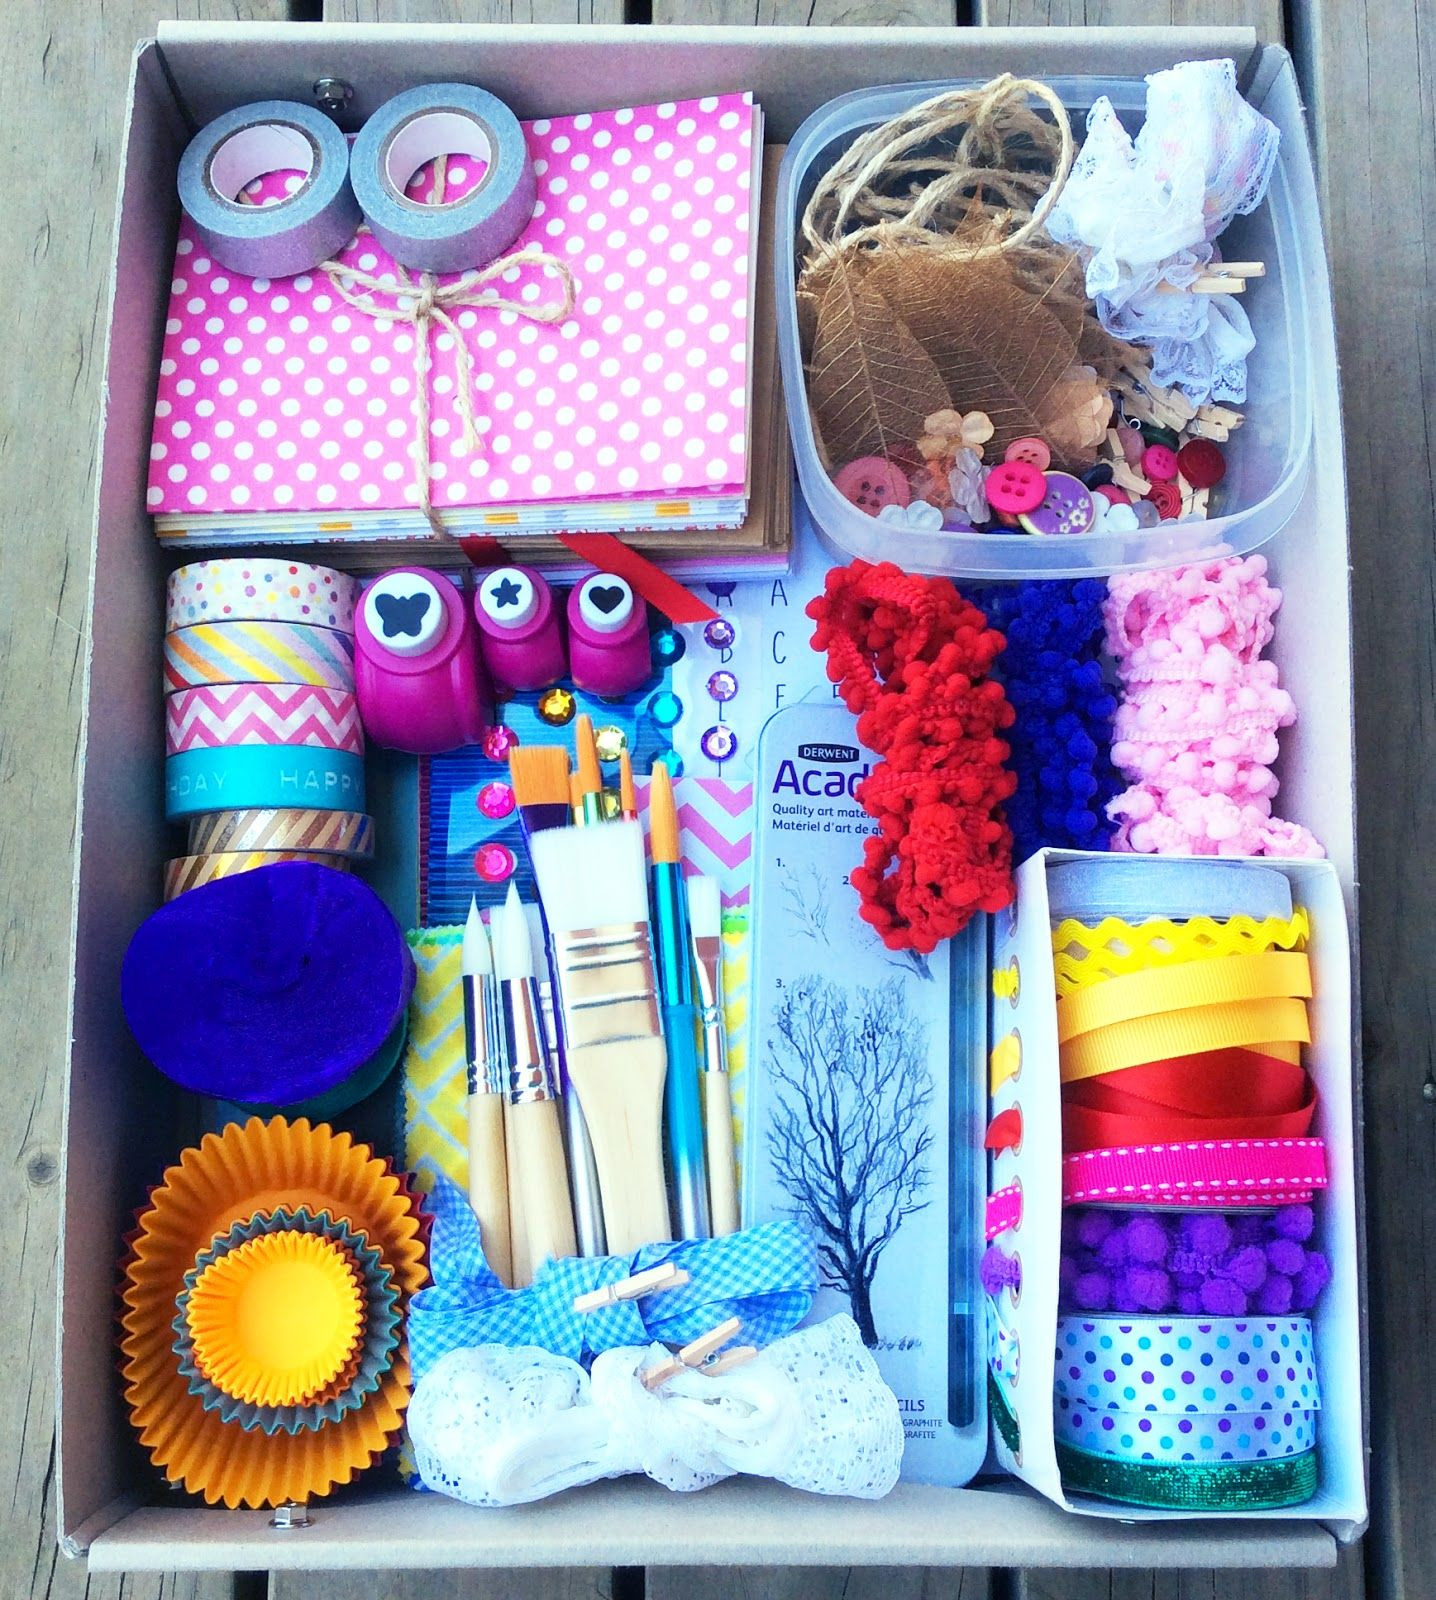 Living Future Memories Creating The Best Ever Craft Box For 7 12 Year Olds Perfect Gift A Creative Older Child